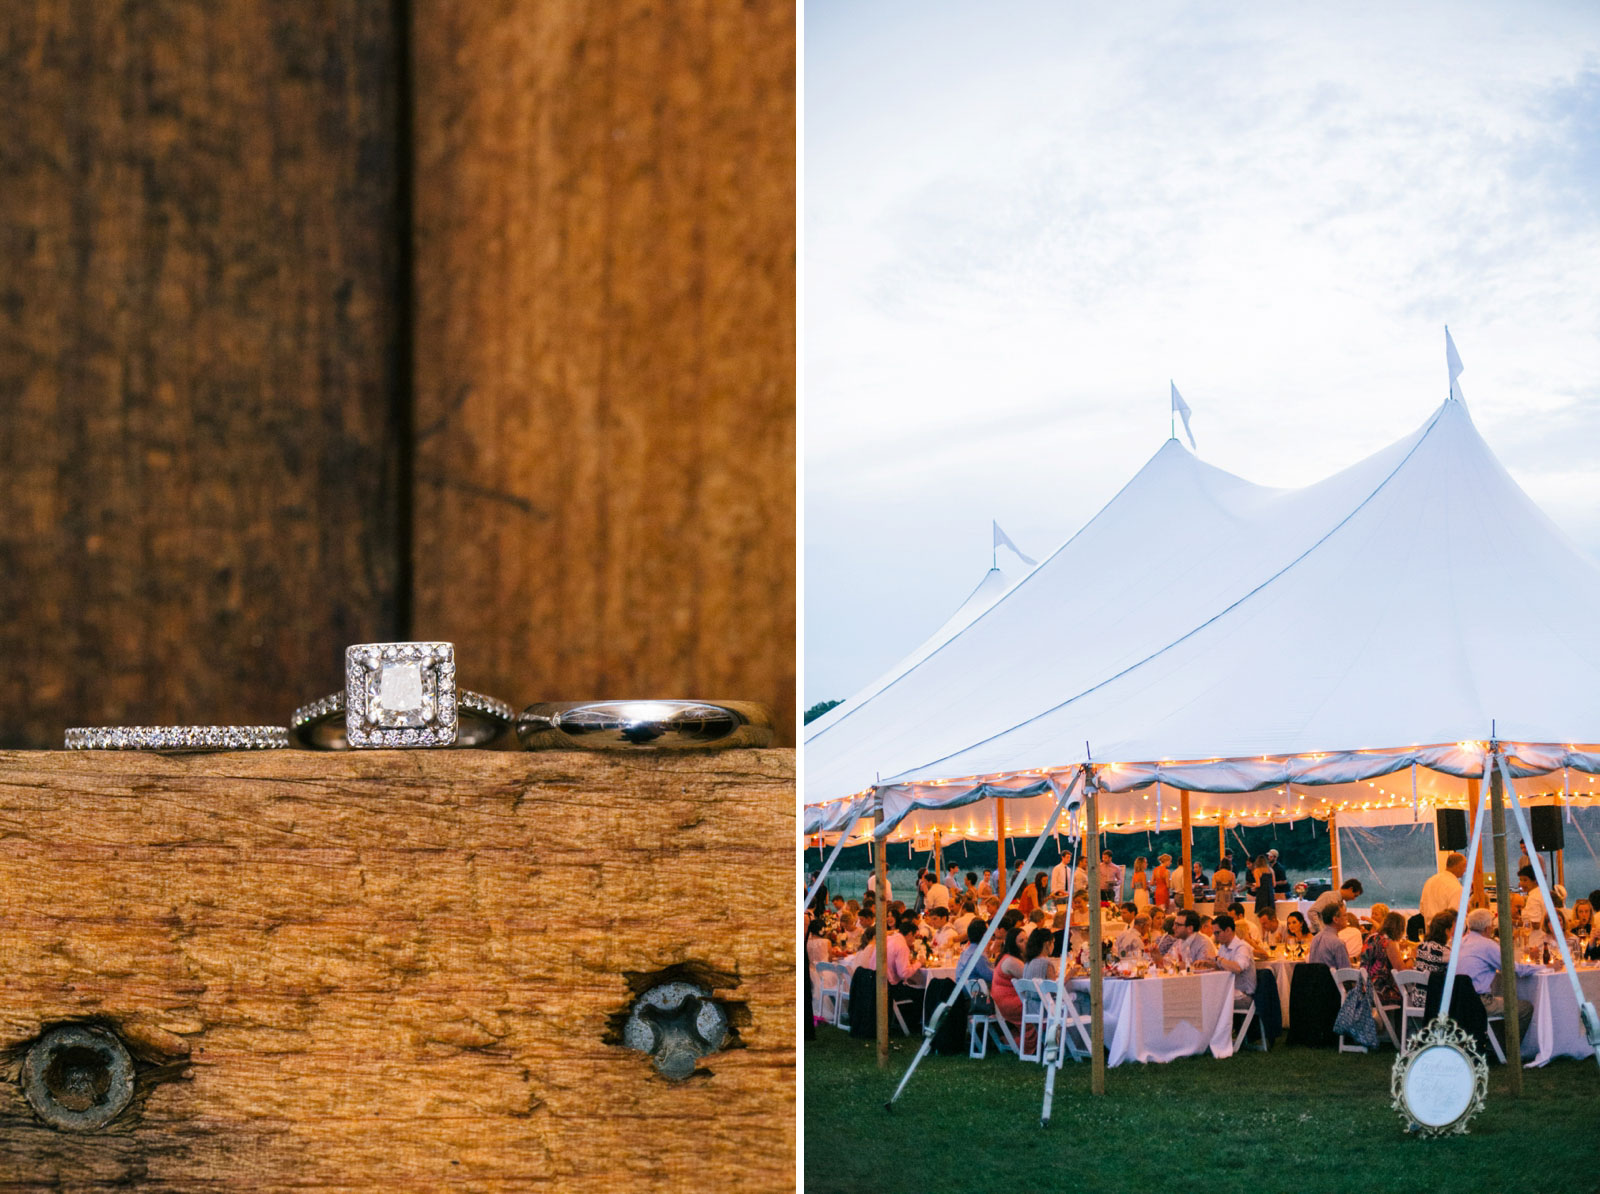 Detail of wedding rings sitting on ledge in barn, view of wedding reception under tent at dusk.